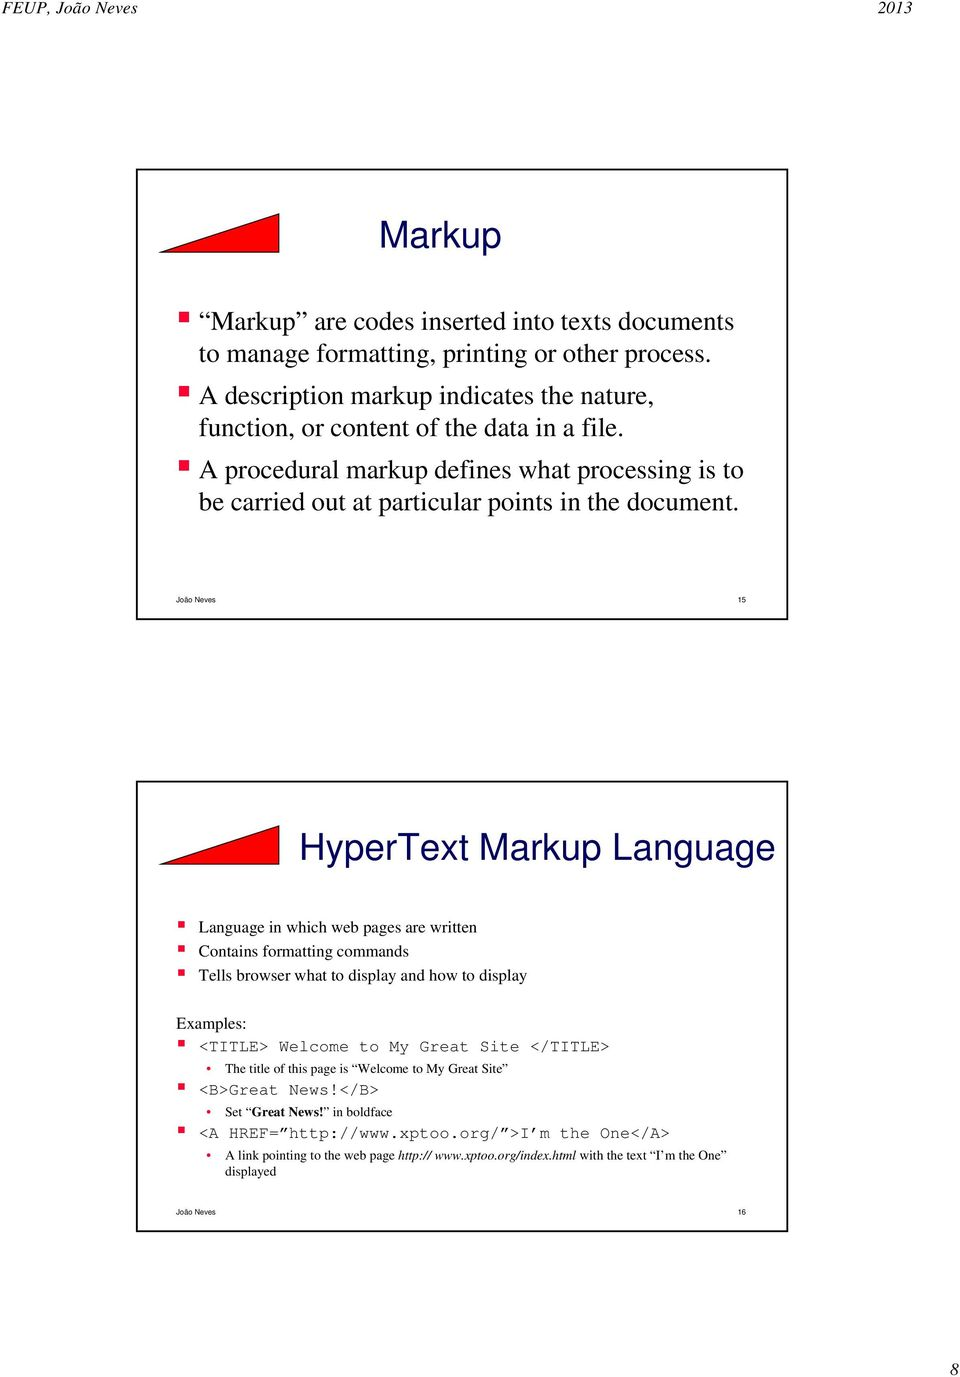 João Neves 15 HyperText Markup Language Language in which web pages are written Contains formatting commands Tells browser what to display and how to display Examples: <TITLE> Welcome to My